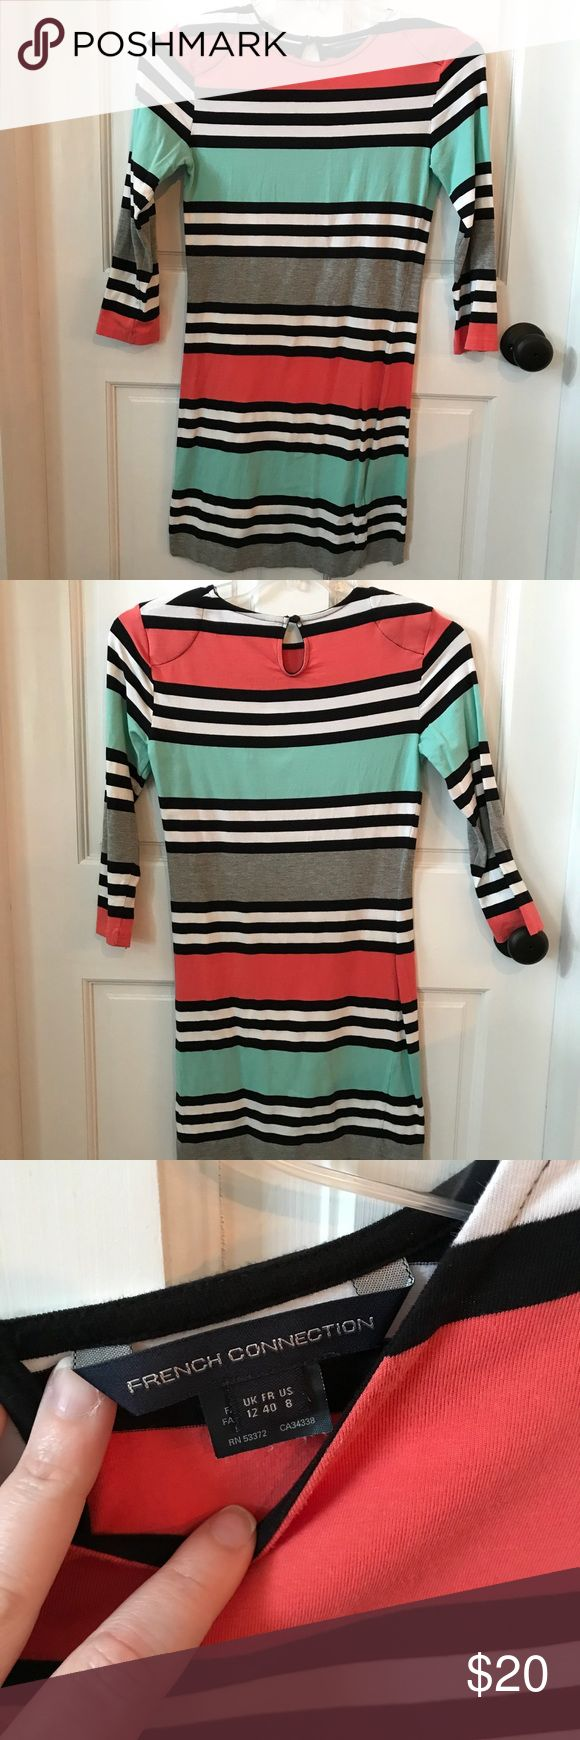 French Connection size 8 striped t-shirt dress Pink, green, black and white striped t-shirt by French Connection in size 8. The dress fits tighter and has shoulder pads, part of the style. There is some pilling at the arm pits. French Connection Dresses